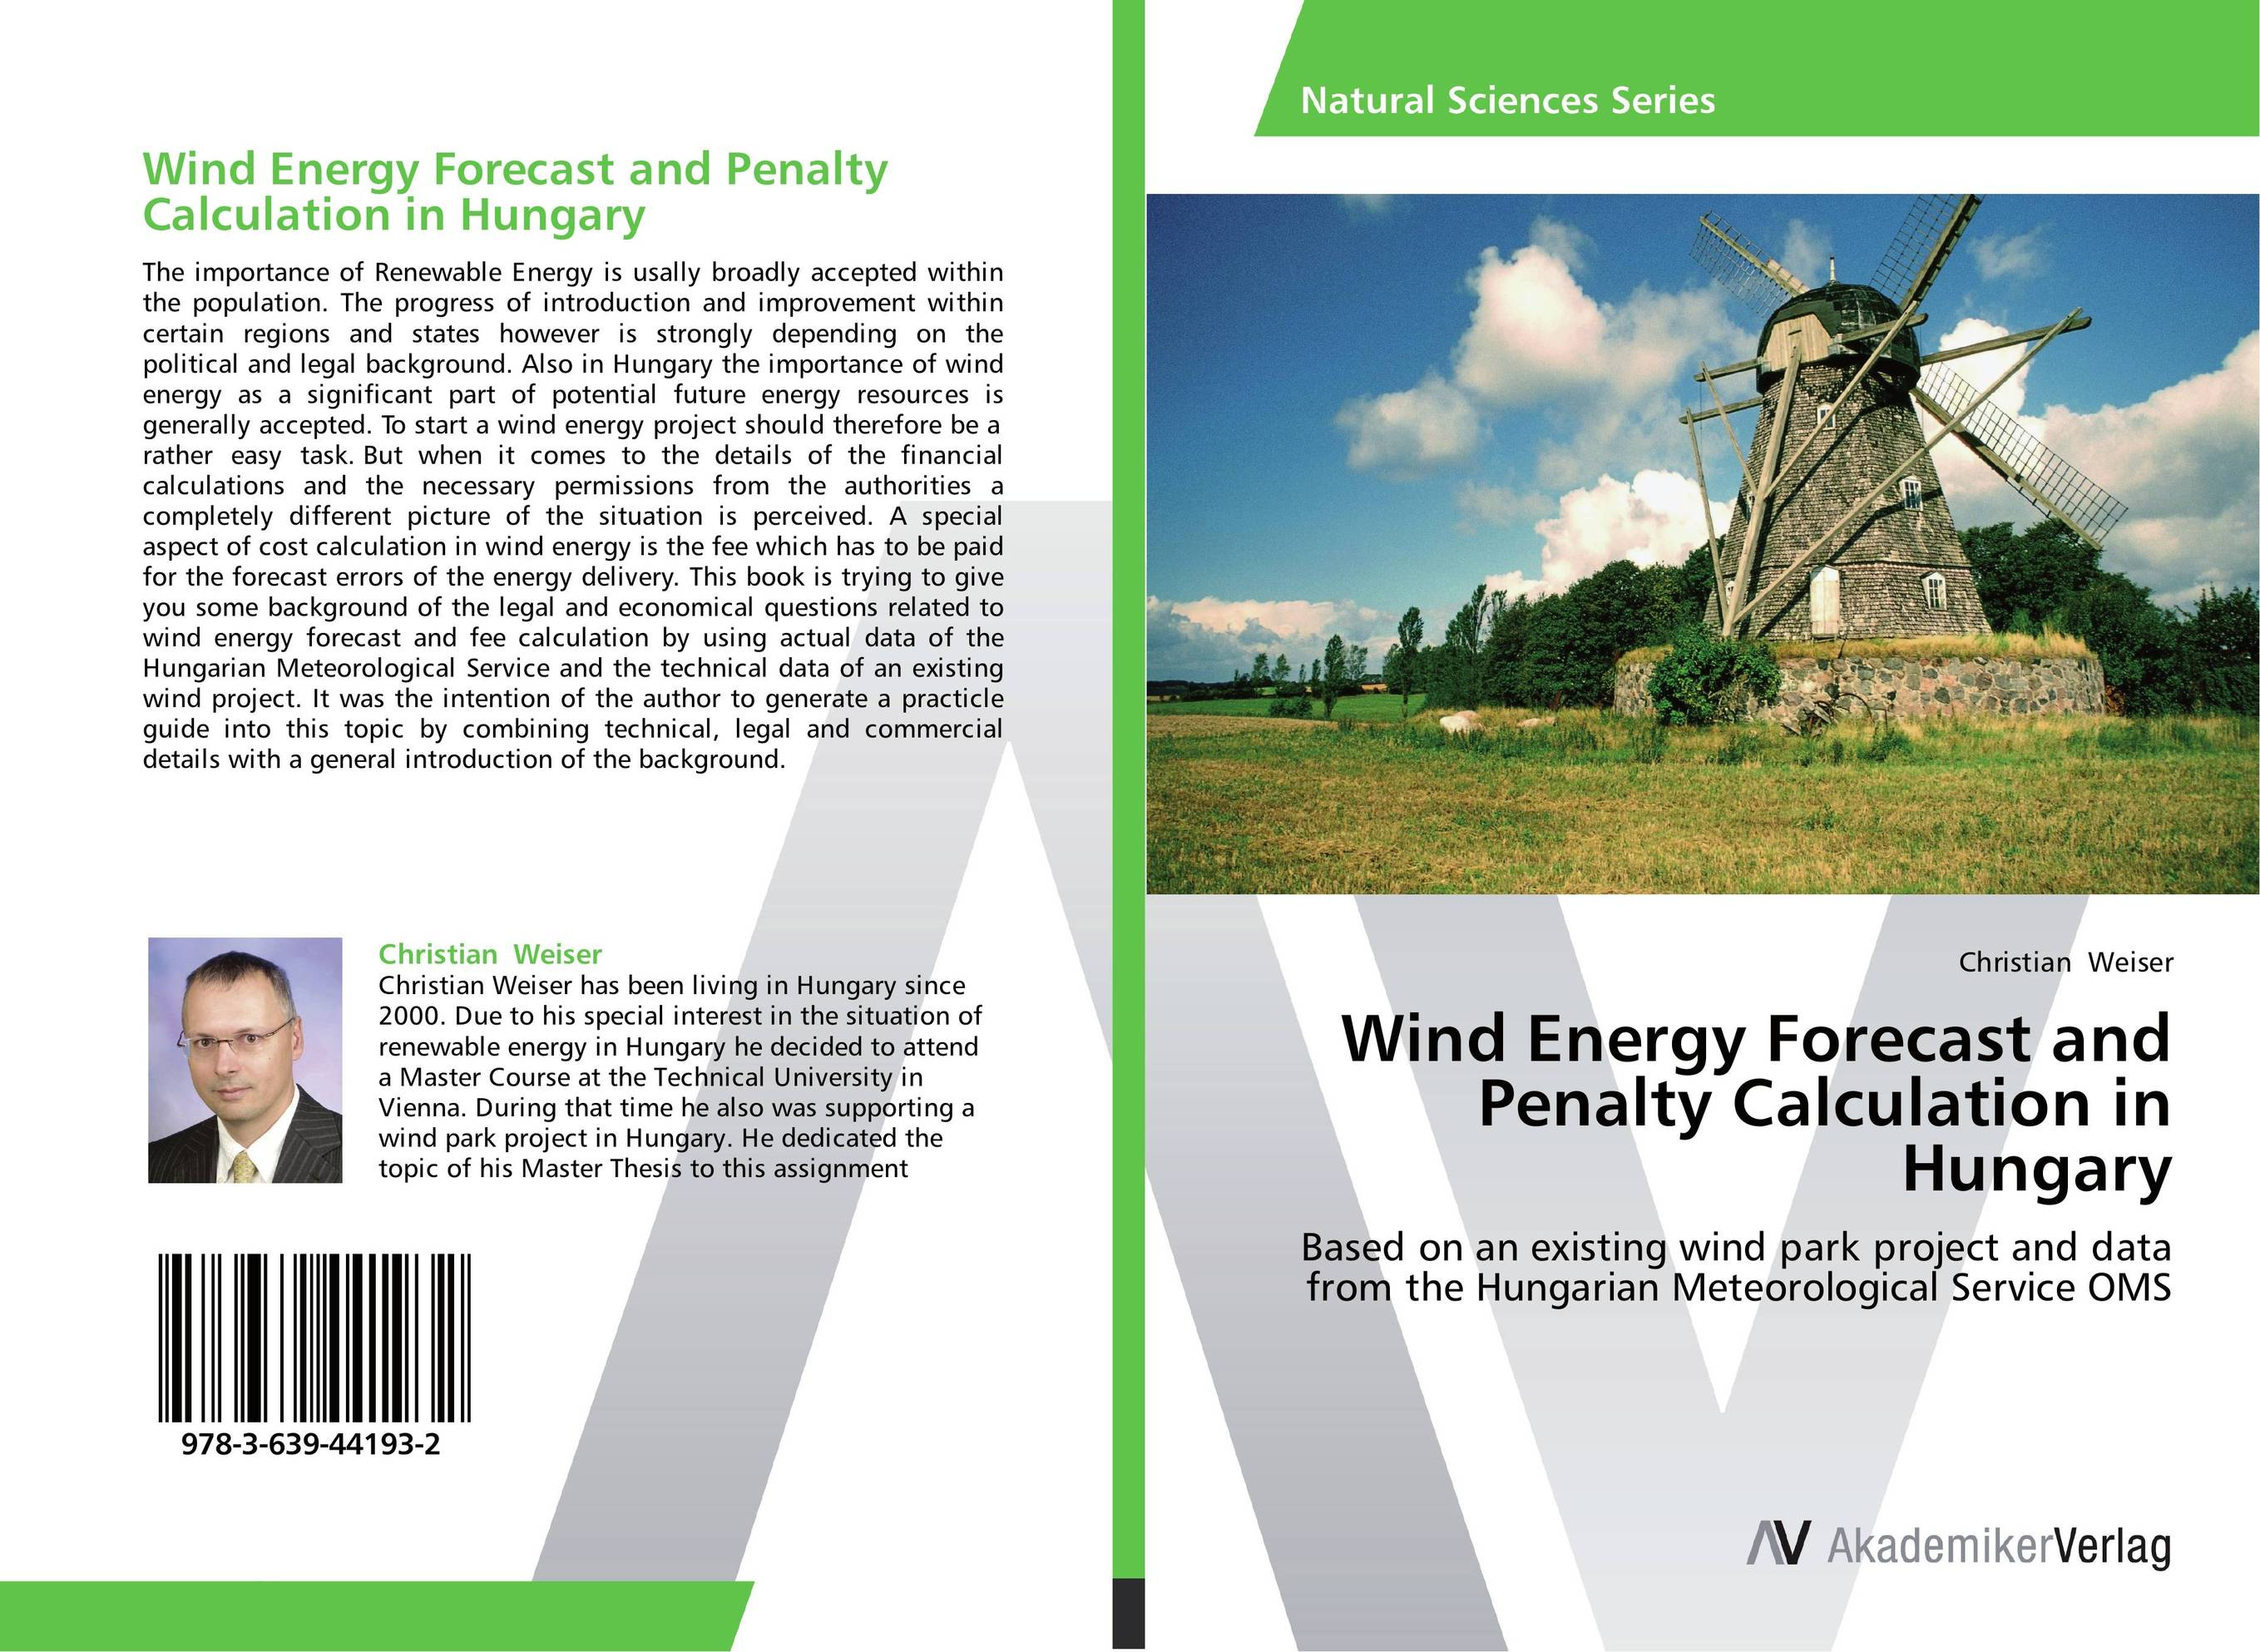 Wind Energy Forecast and Penalty Calculation in Hungary